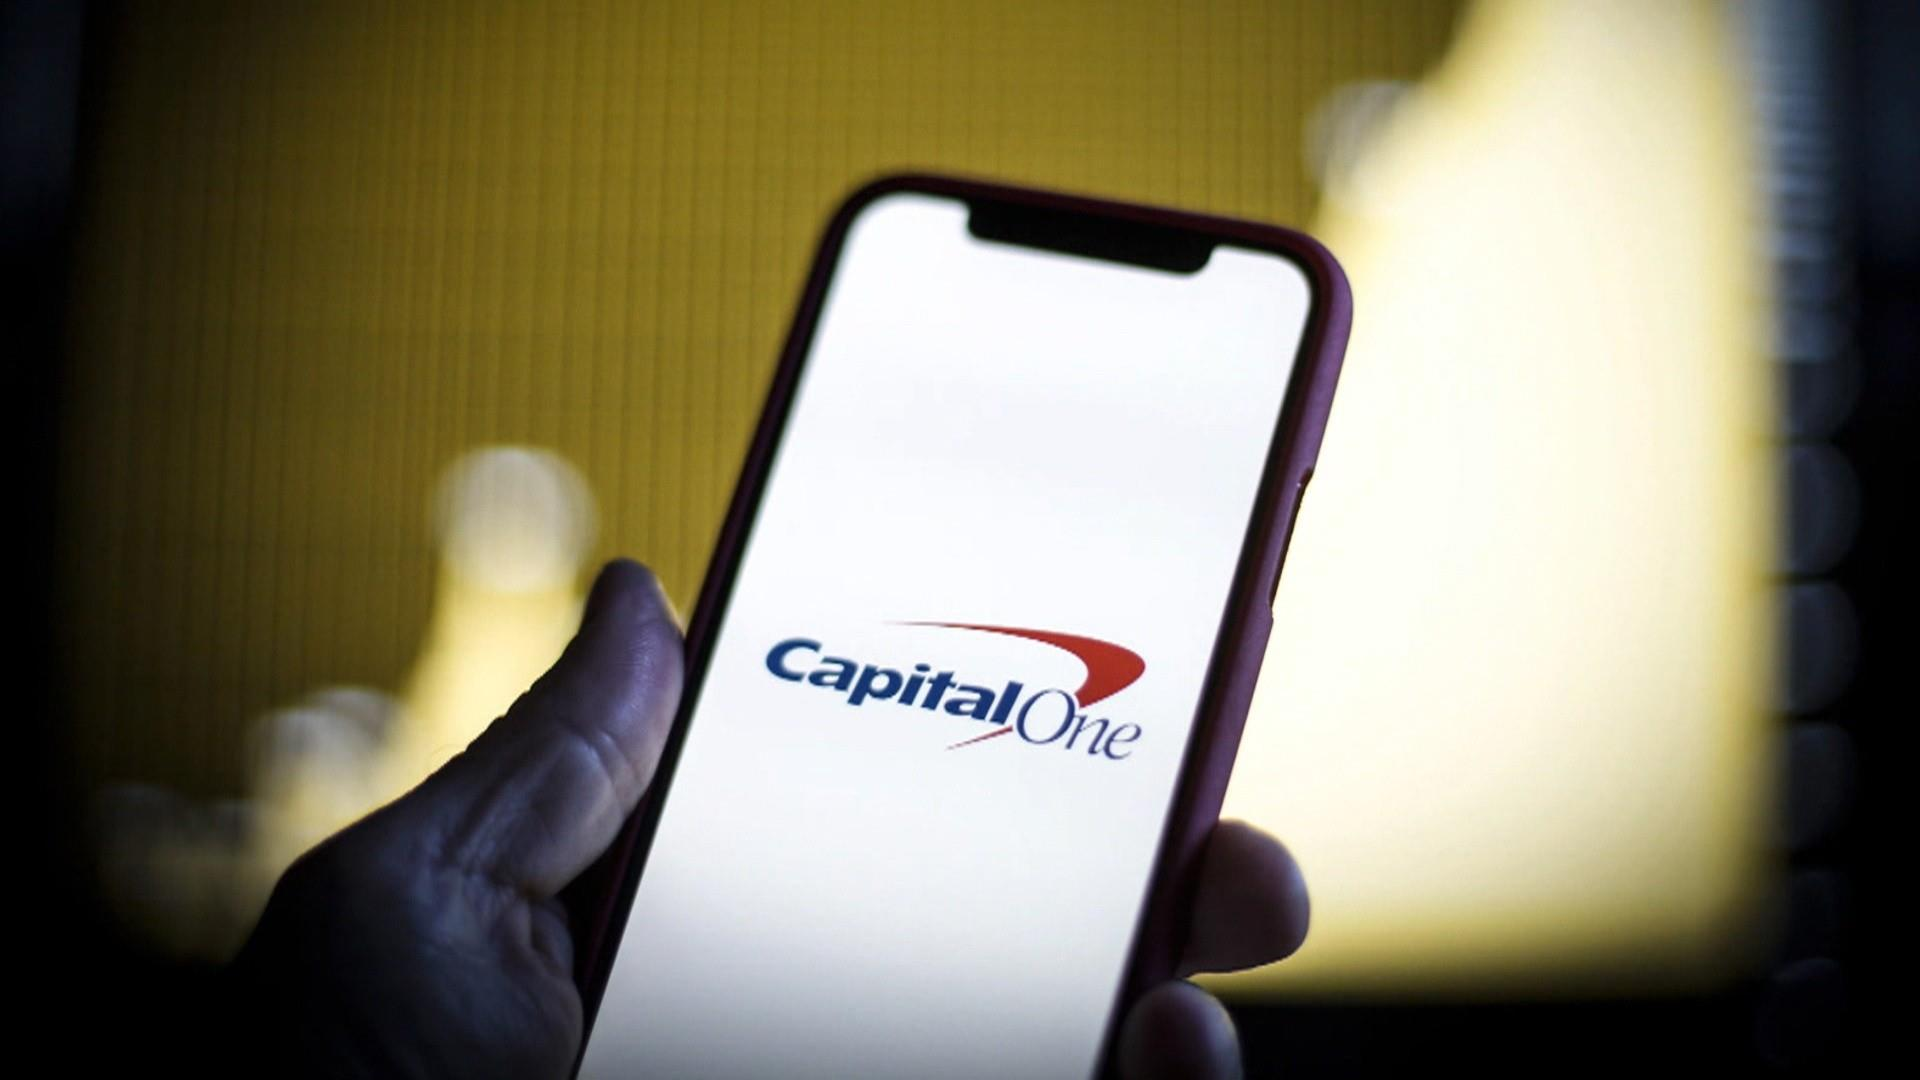 Capital One data breach impacts 100 million, suspect in custody